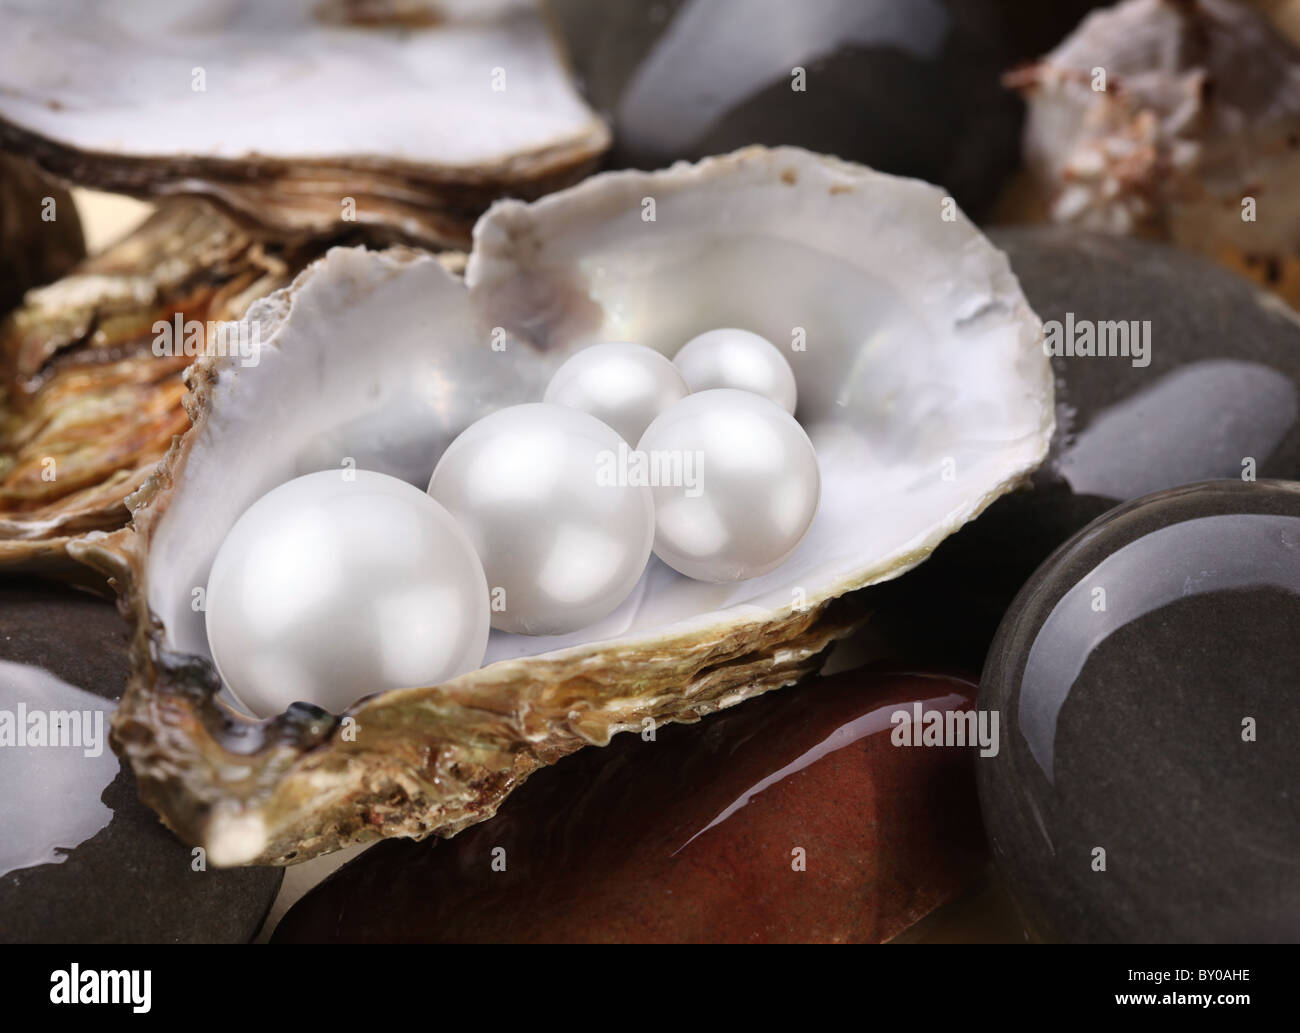 Image placer pearls in a shell on the wet pebbles. - Stock Image